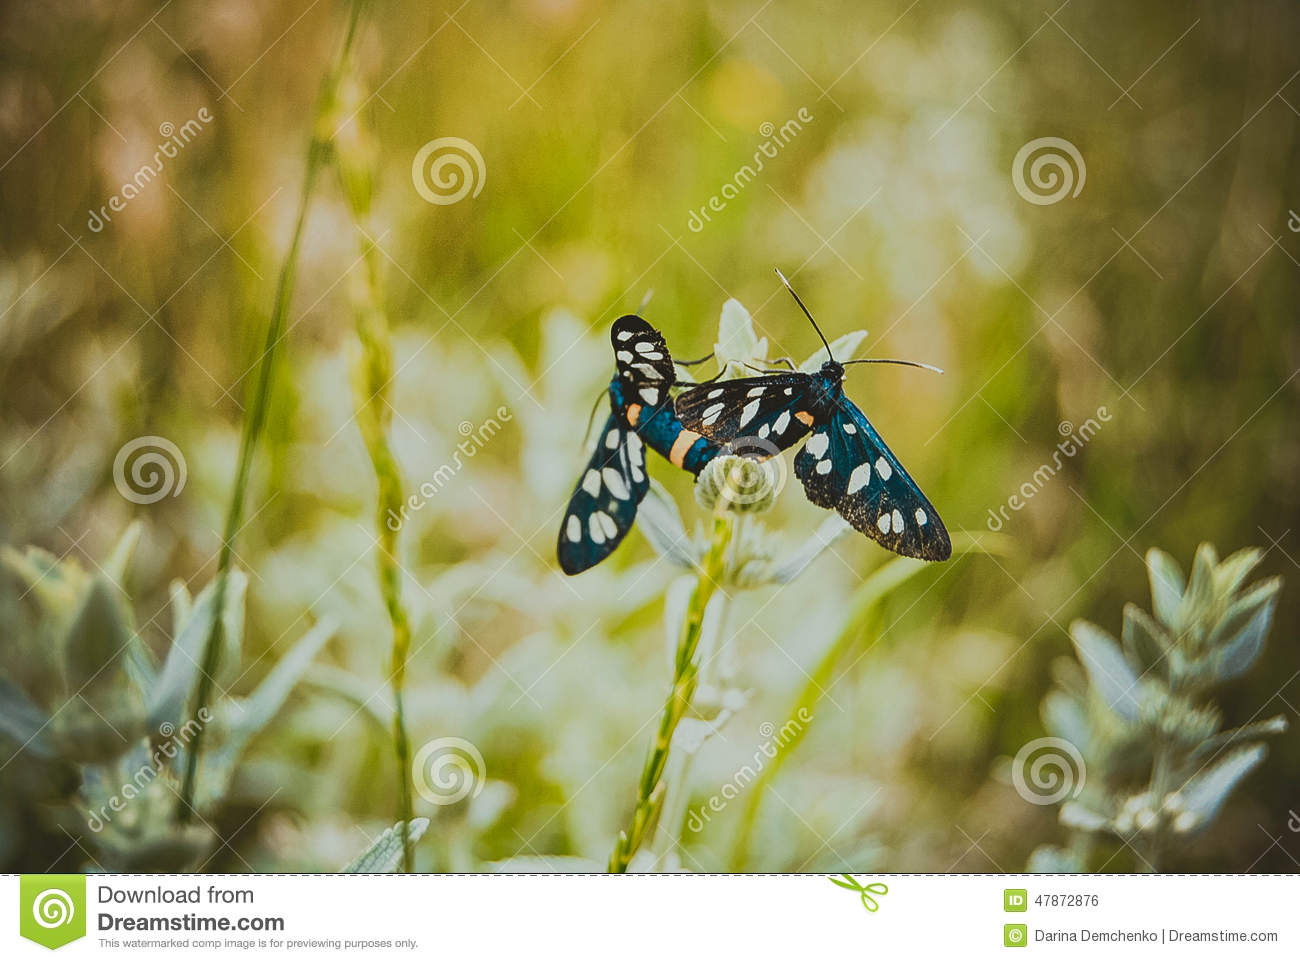 Butterfly, butterfiles, background